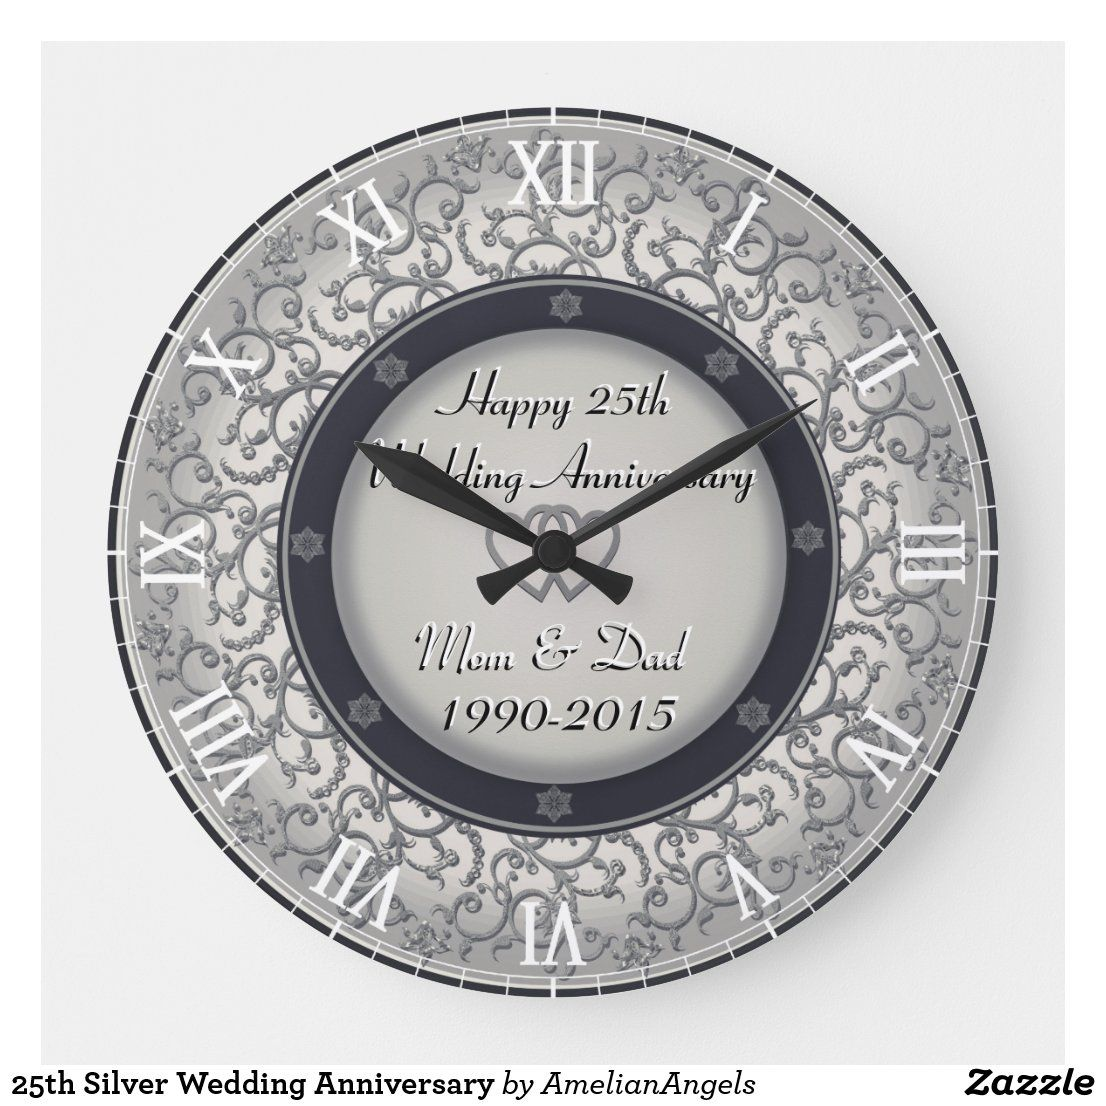 25th Silver Wedding Anniversary Large Clock Zazzle Com In 2020 Silver Wedding Anniversary Silver Wedding Wedding Anniversary